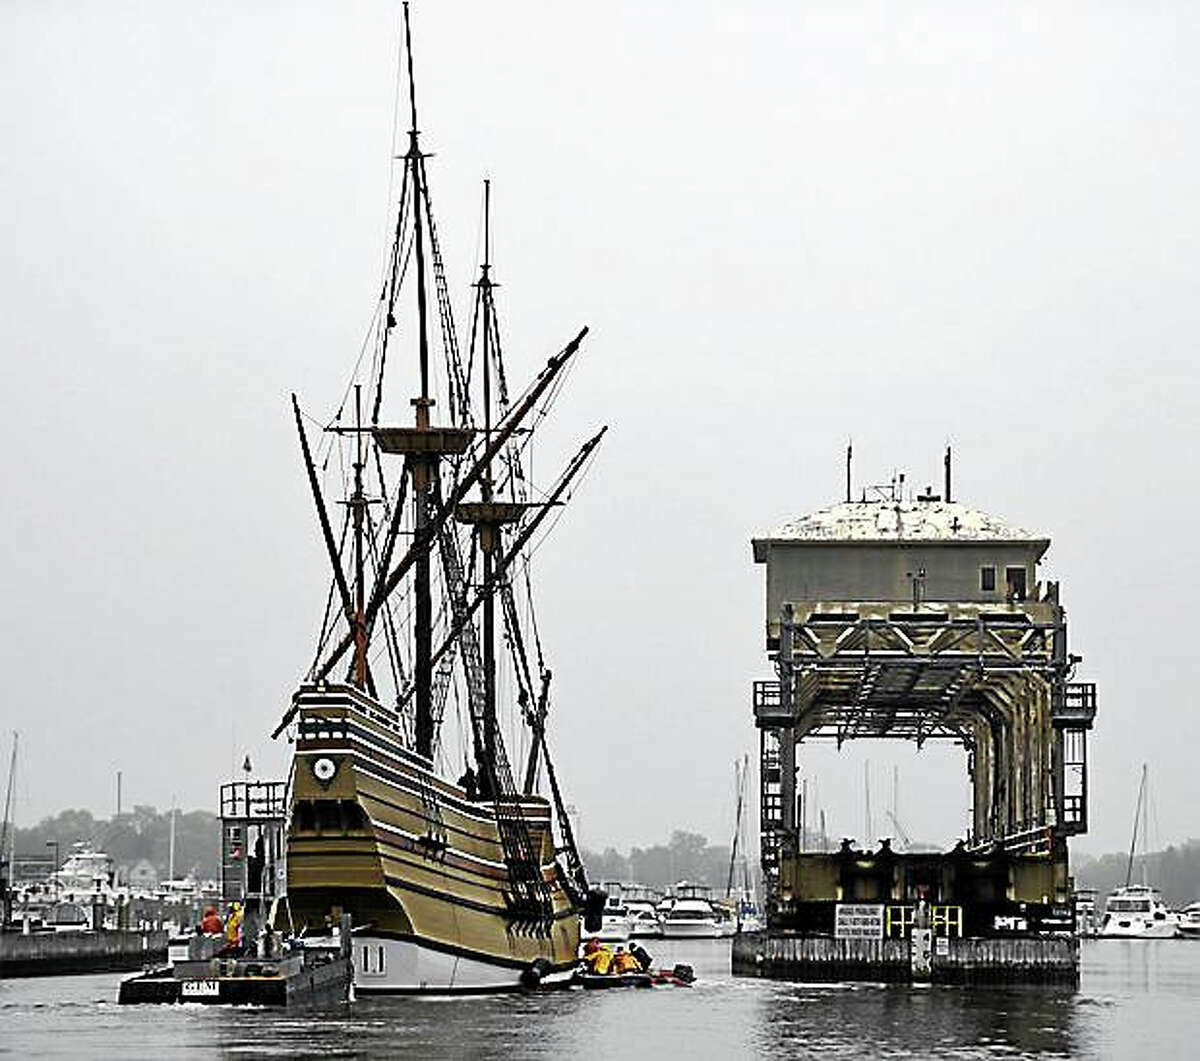 Mayflower II being towed in the Mystic River, past the Mystic River Bridge